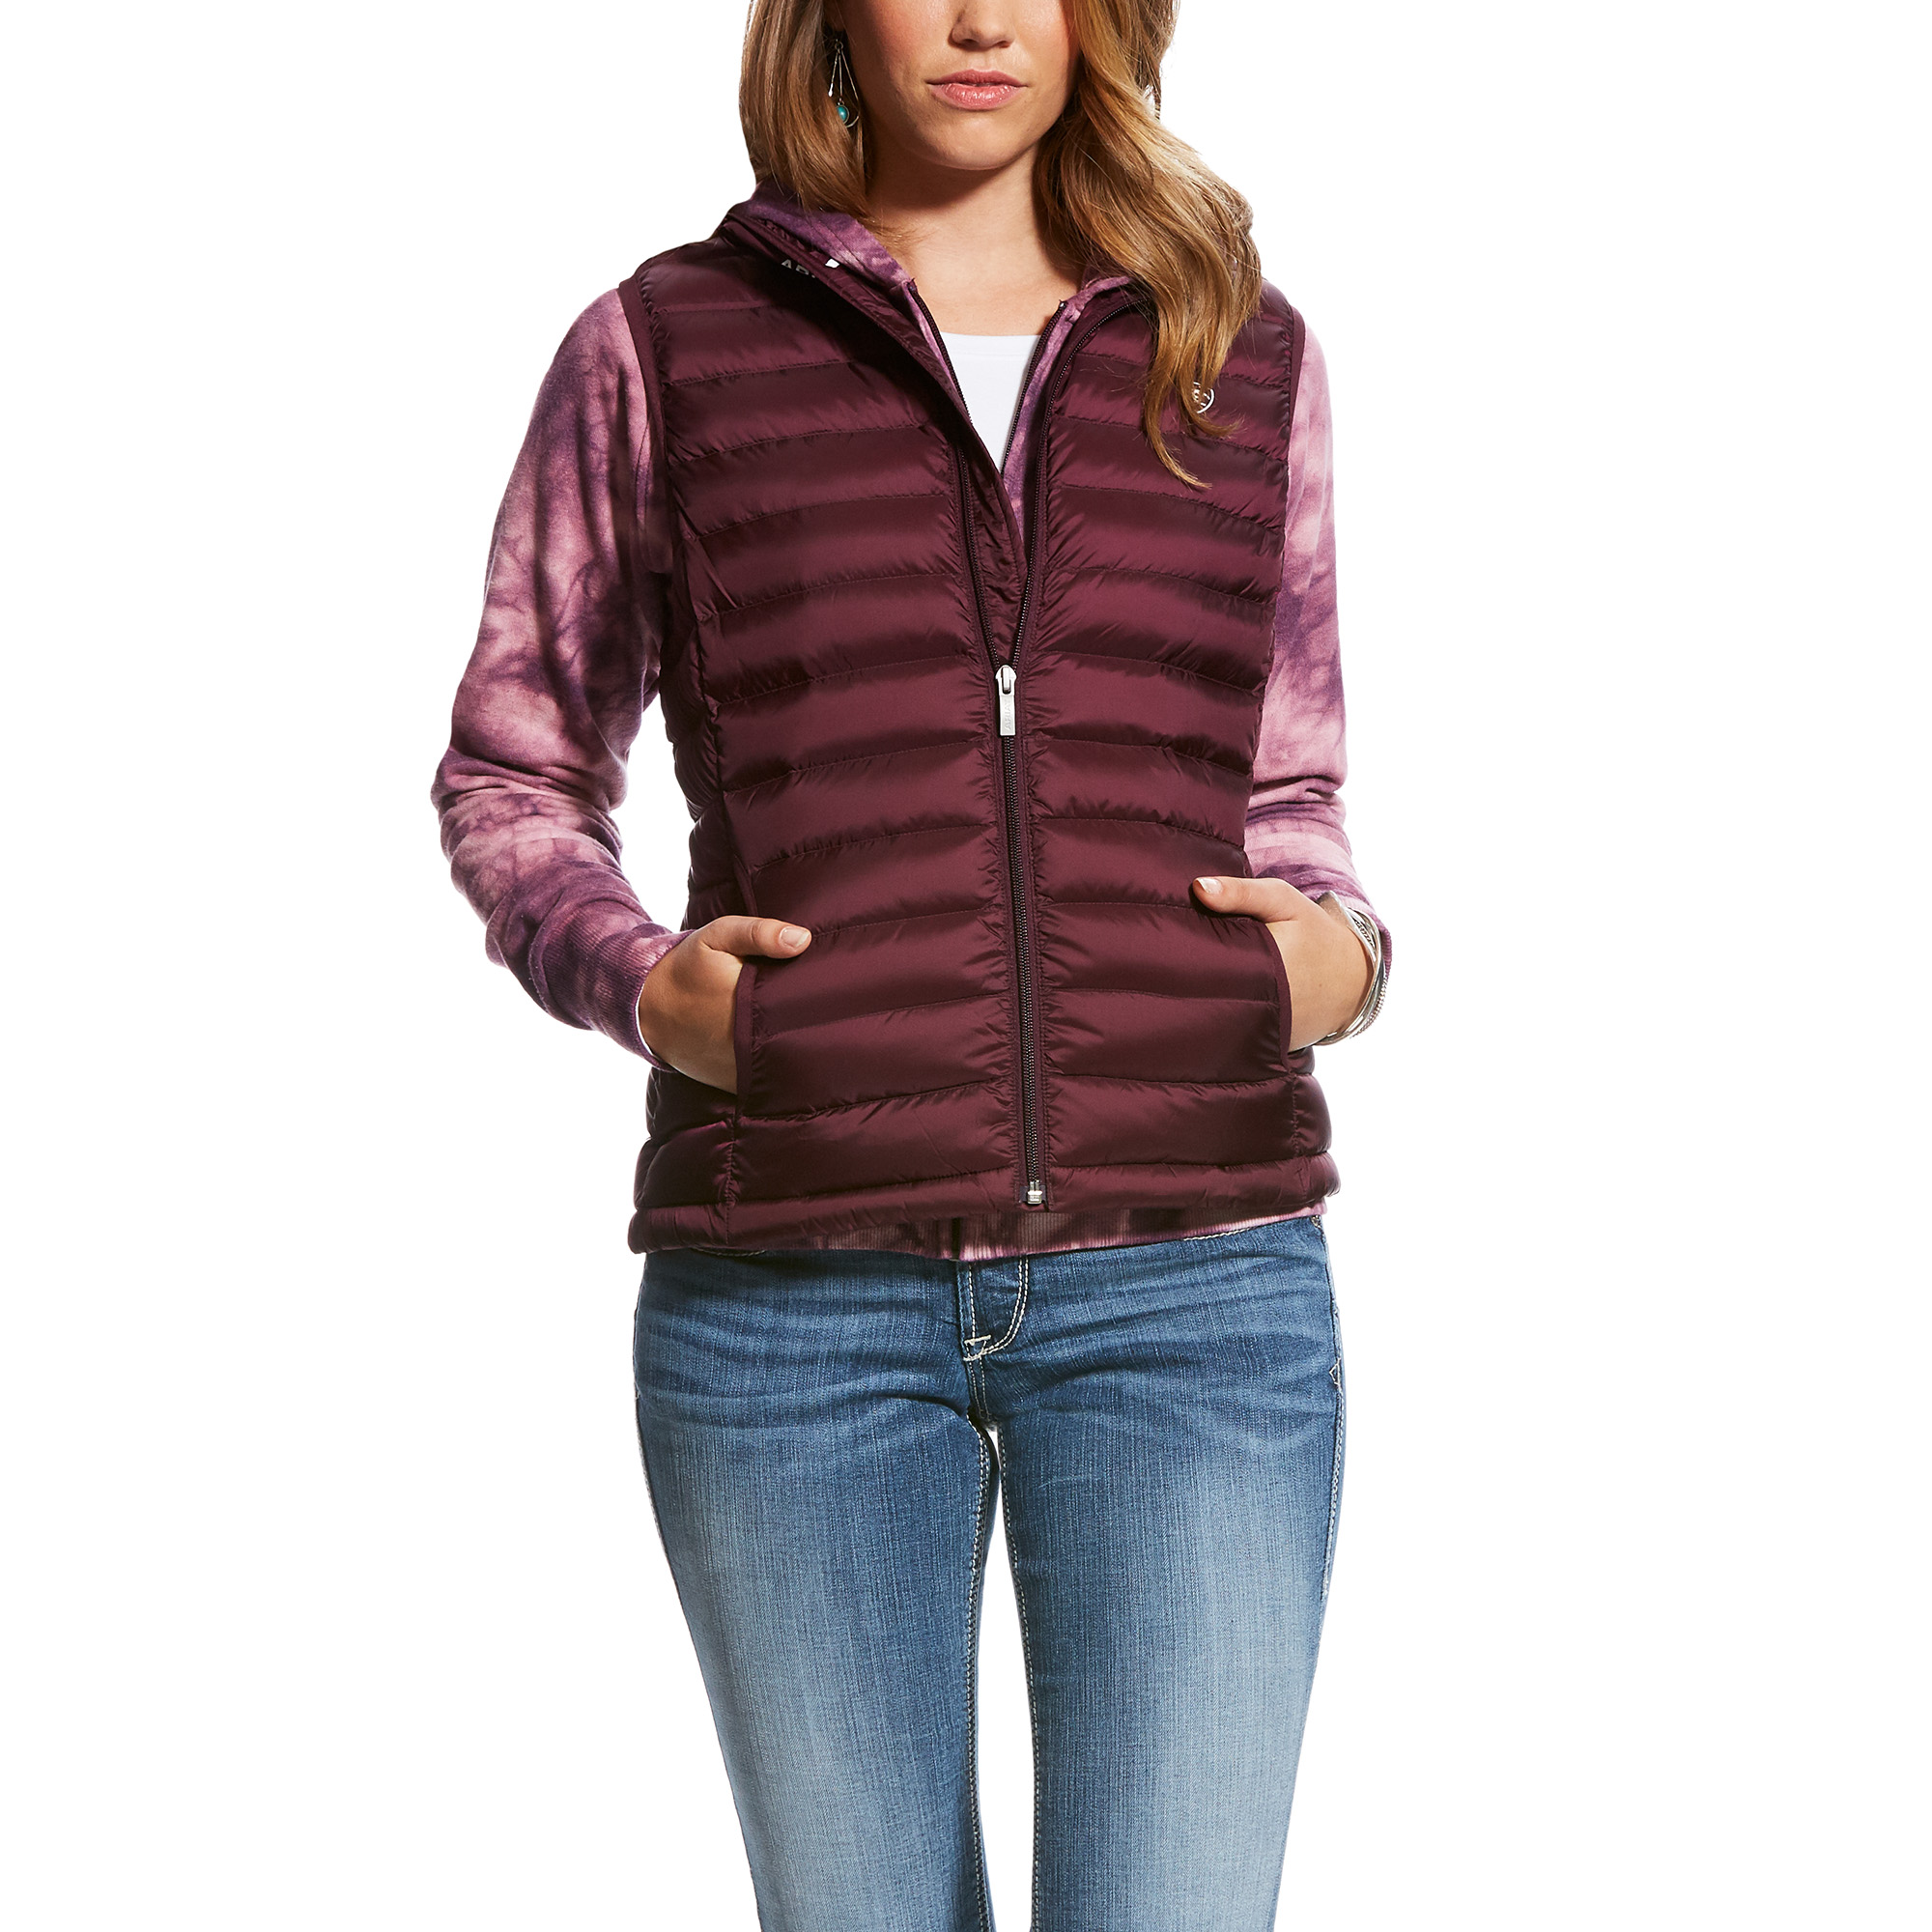 Ideal Down Vest from Ariat - Beatroute